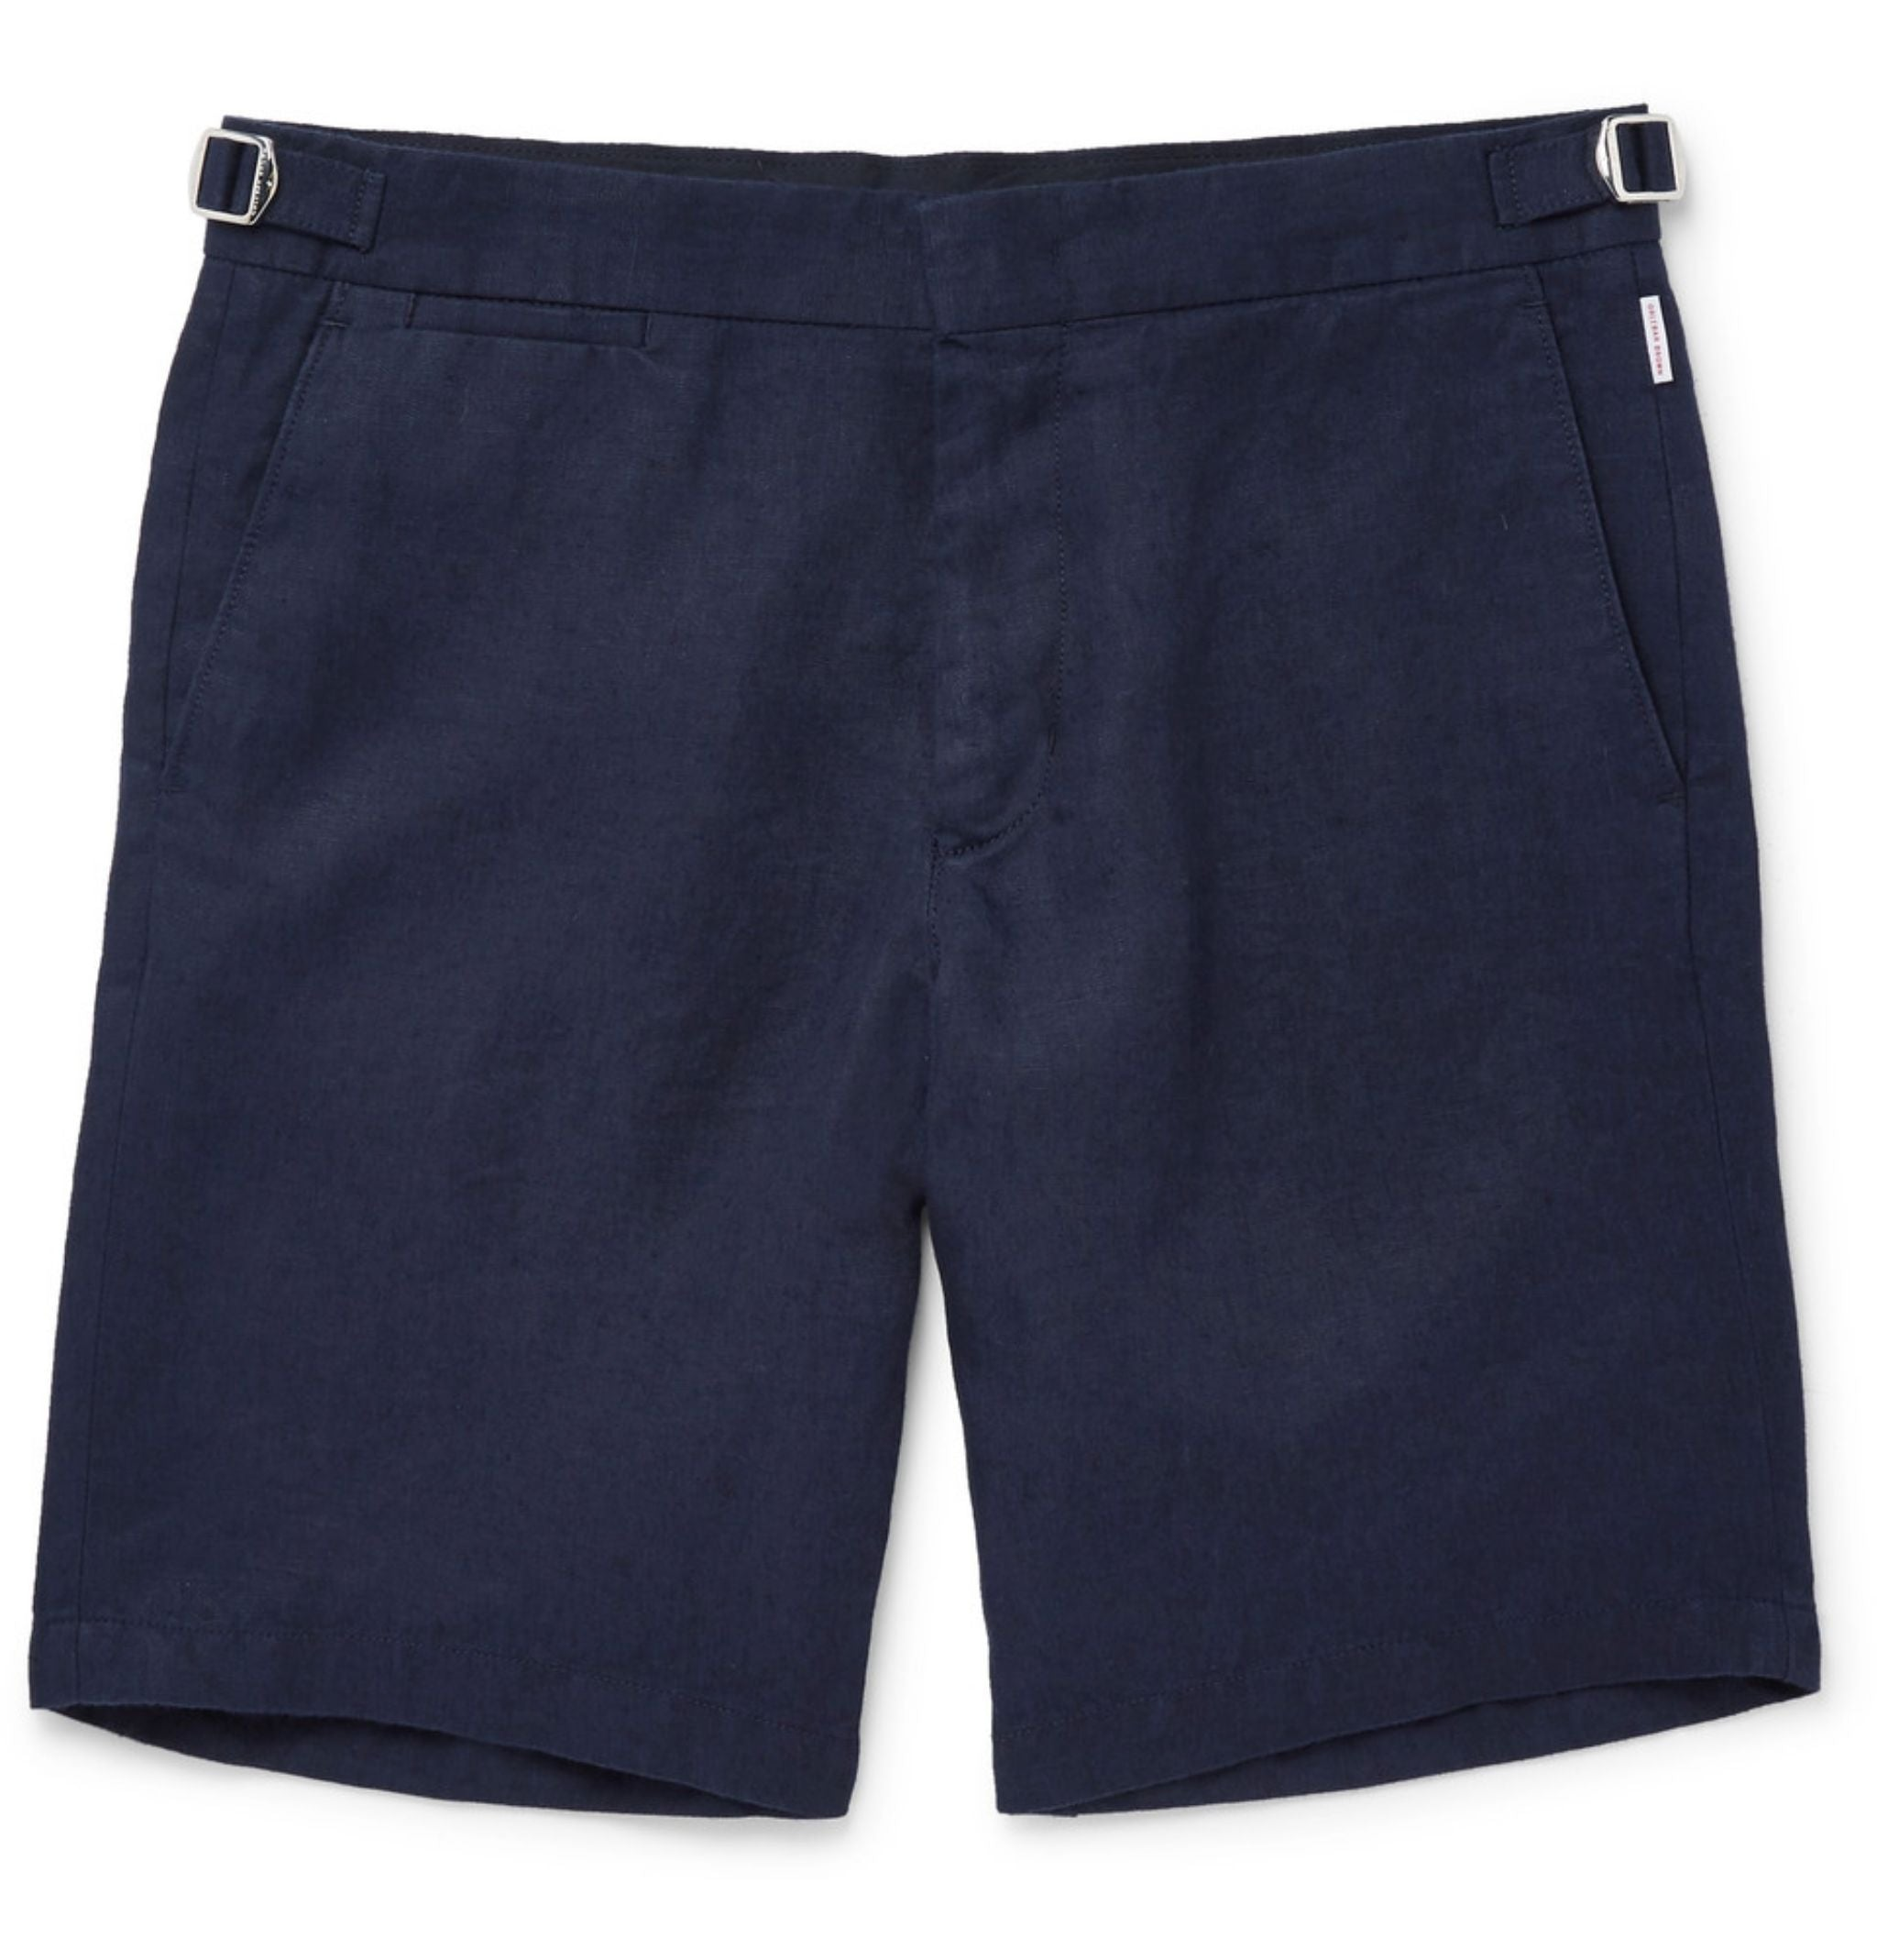 Shorts-for-summer-classic-navy-blue-cotton-shorts by Orlebar Brown